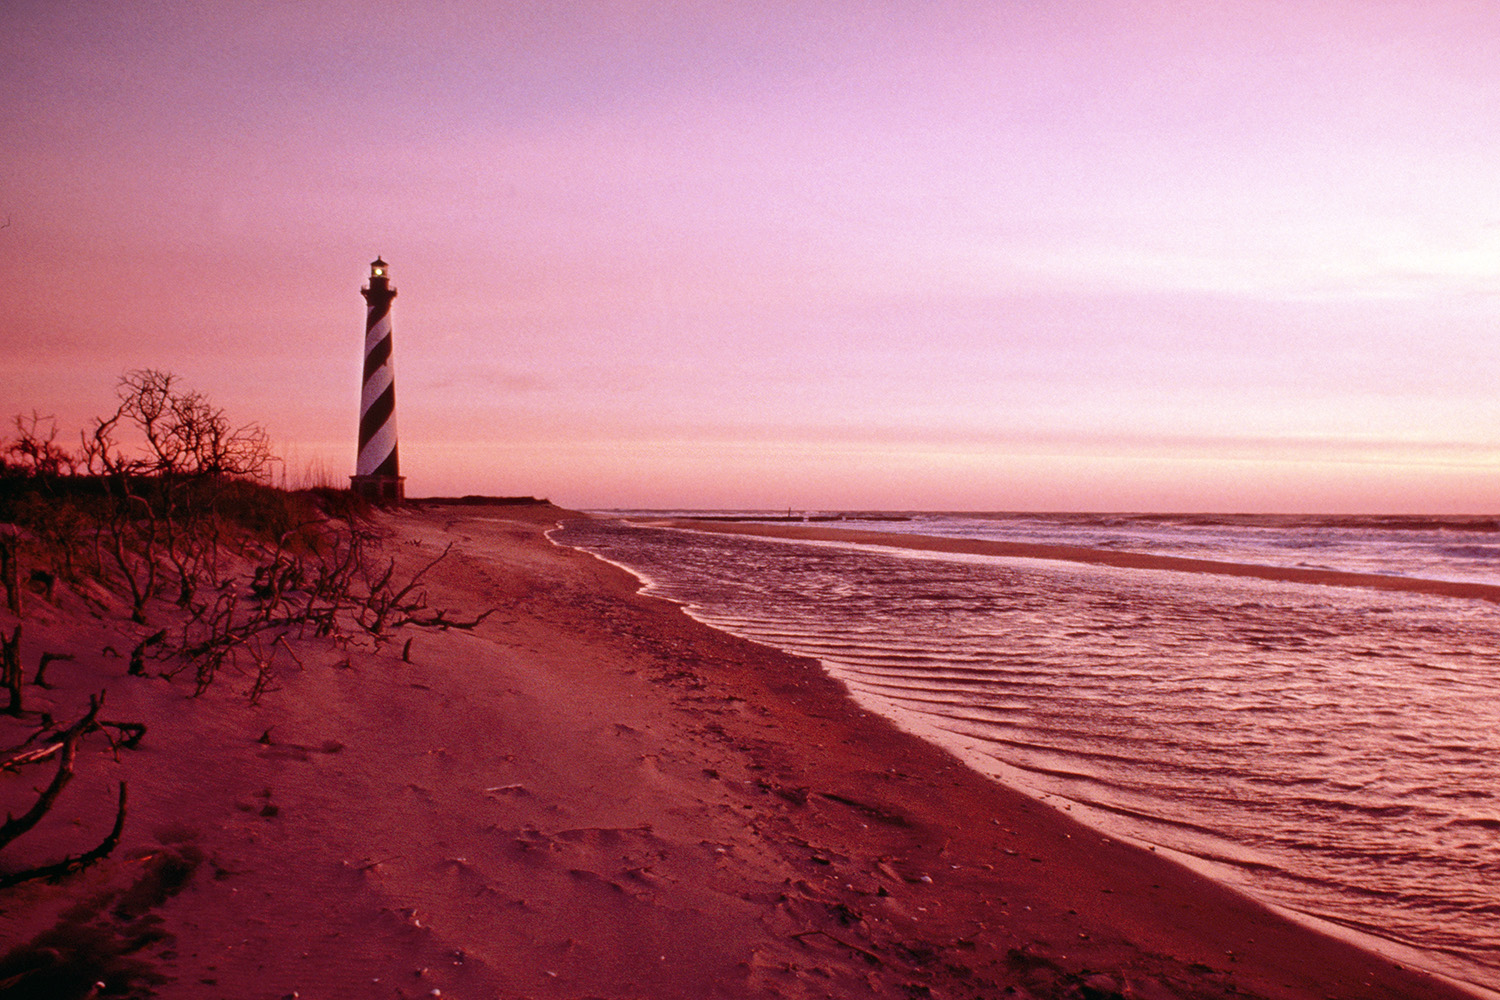 The Hatteras Light